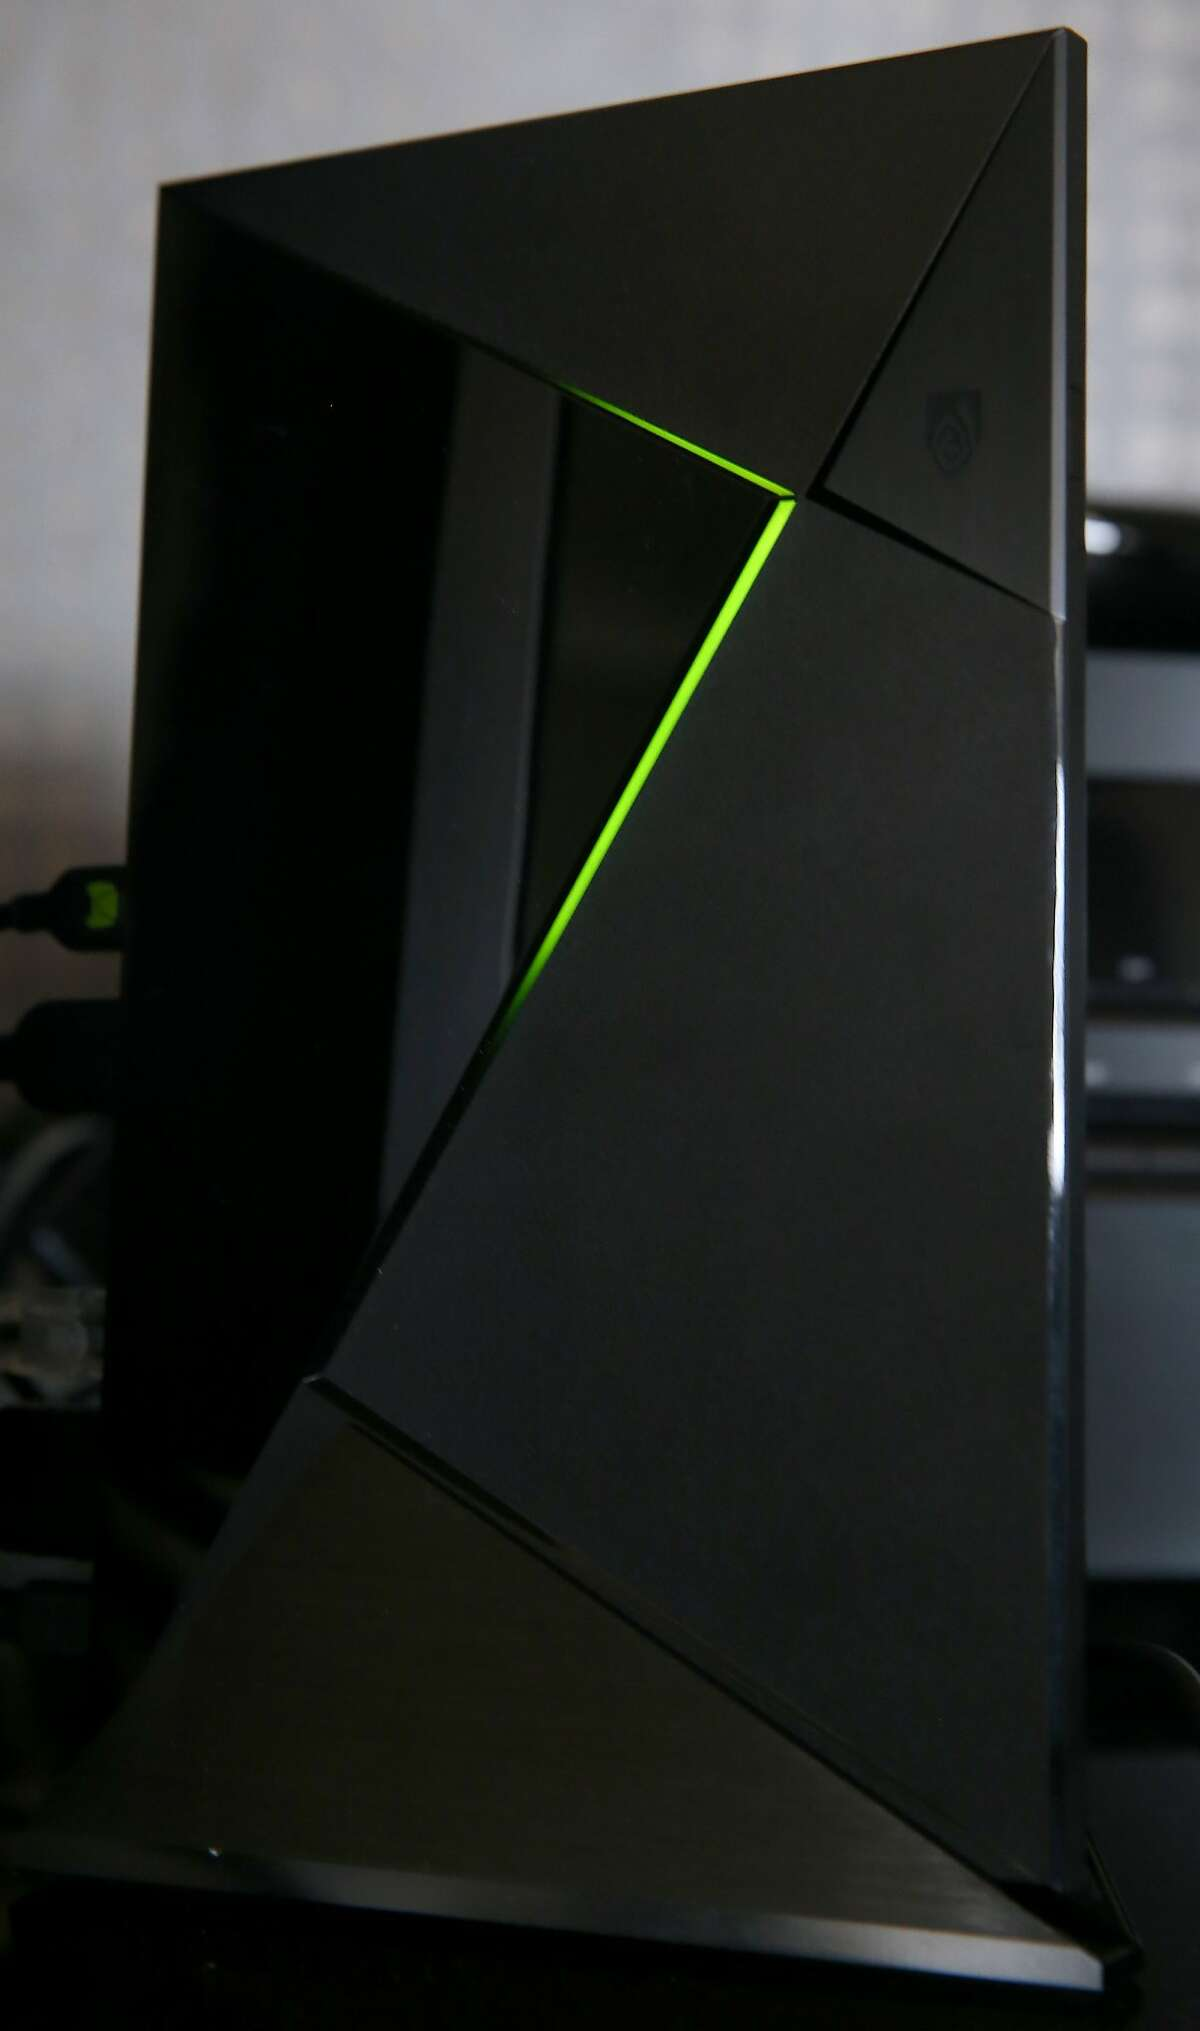 Developers demonstrate the Nvidia Shield video streaming device in San Francisco, Calif. on Thursday, May 14, 2015. The Shield runs on the Android TV operating system and is capable of streaming 4K Ultra high definition video content as well as a number of games. NOTE: STORY AND PHOTOS ARE EMBARGOED UNTIL 12:00 PM ON THURSDAY, MAY 28, 2015.